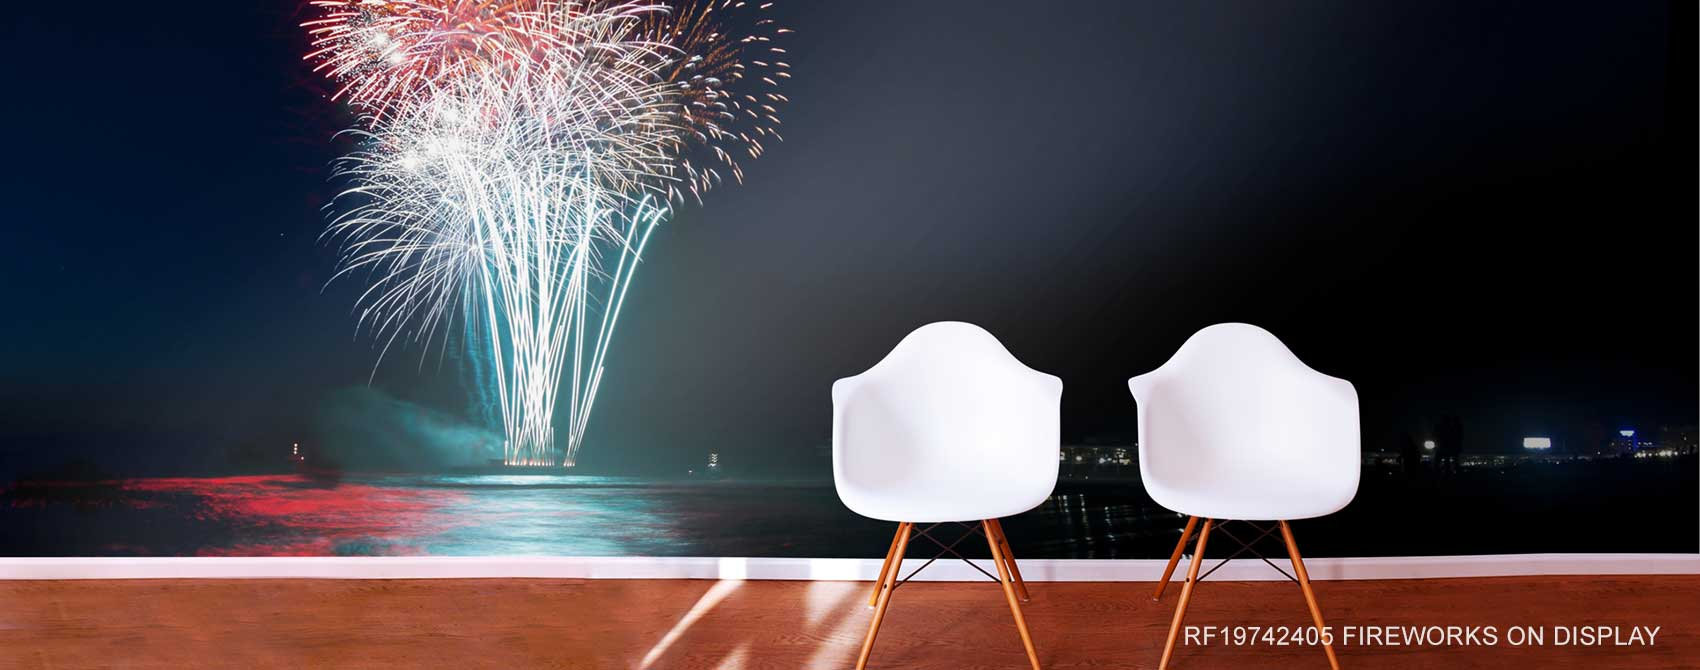 Fireworks On Display Wallpaper Mural